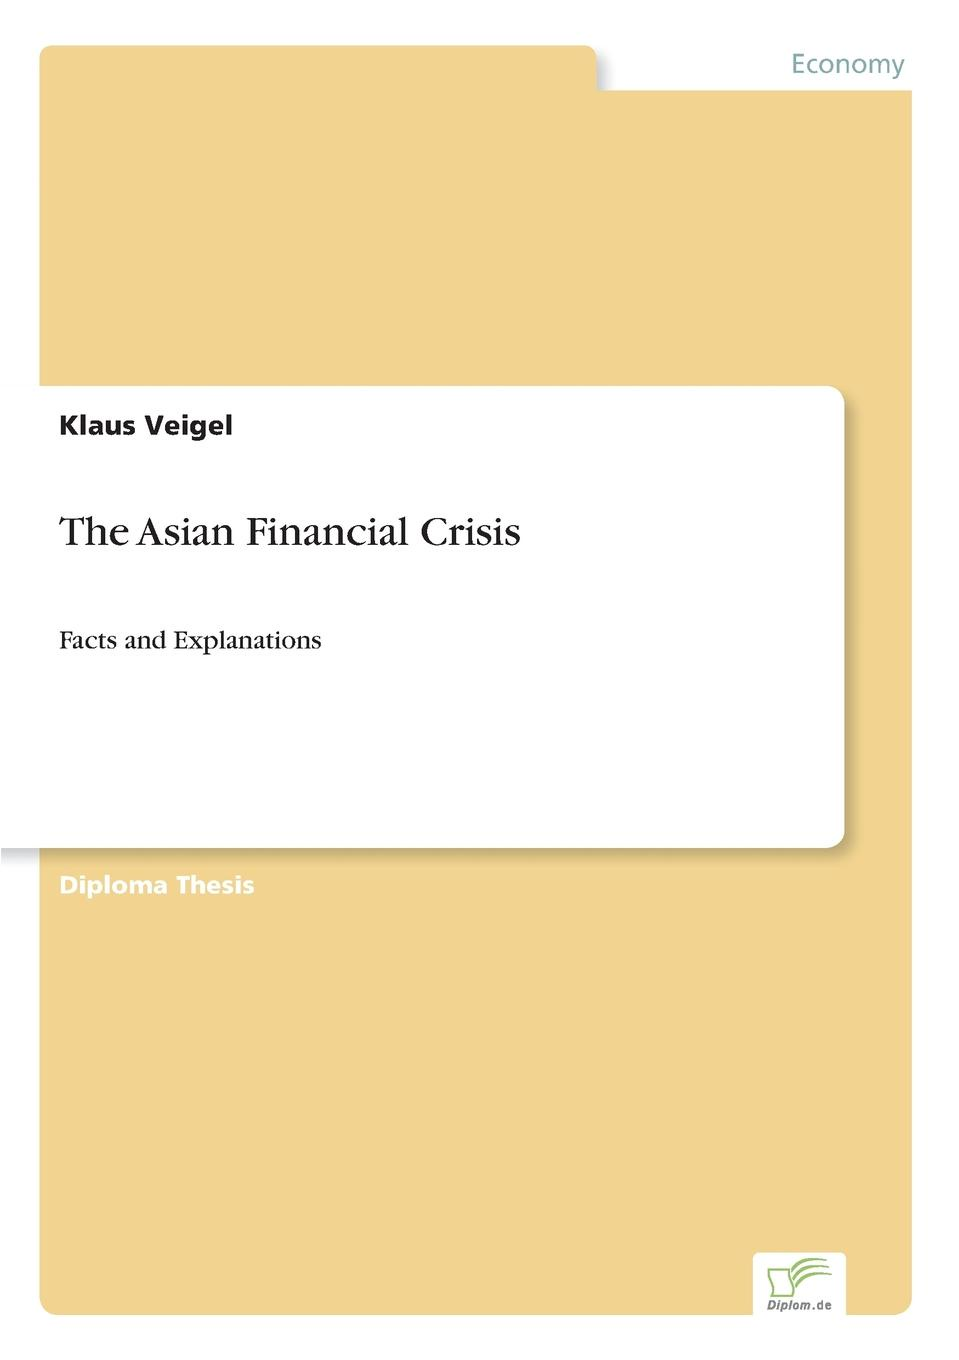 Klaus Veigel The Asian Financial Crisis assessment of interest rates in see countries during crisis